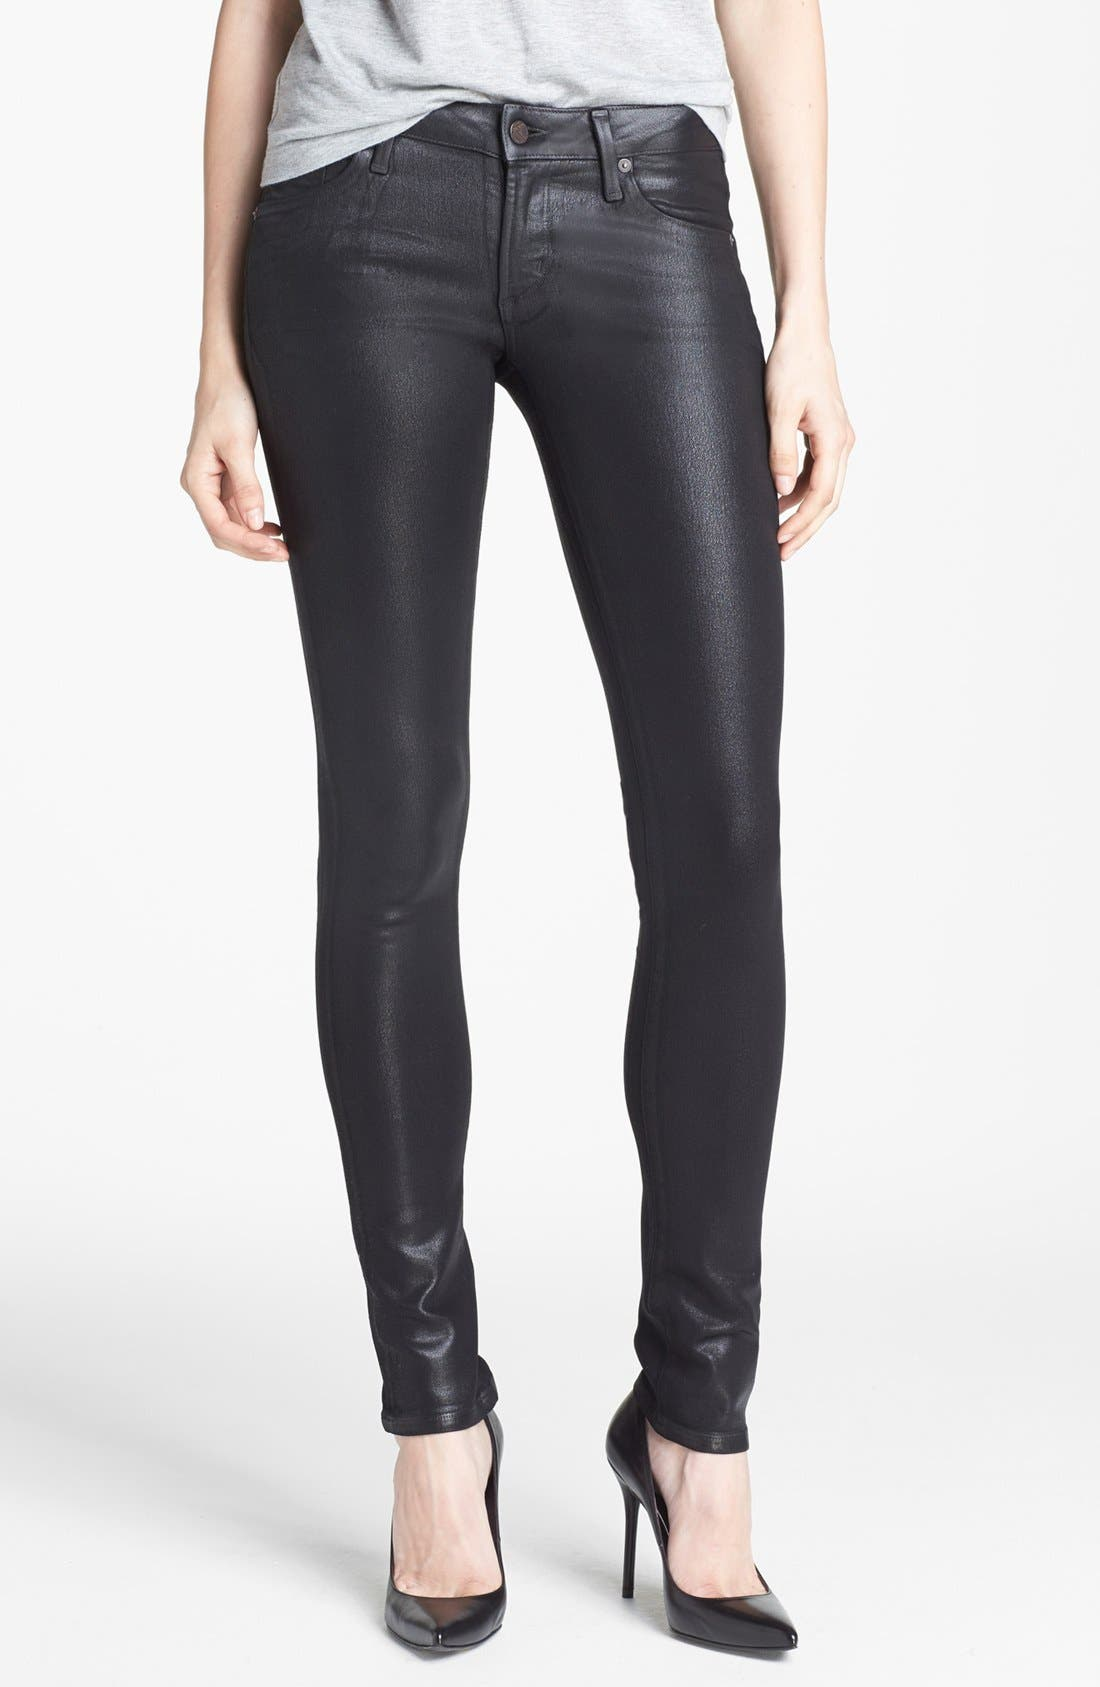 Alternate Image 1 Selected - Citizens of Humanity 'Racer' Low Rise Coated Jeans (Black Coated)